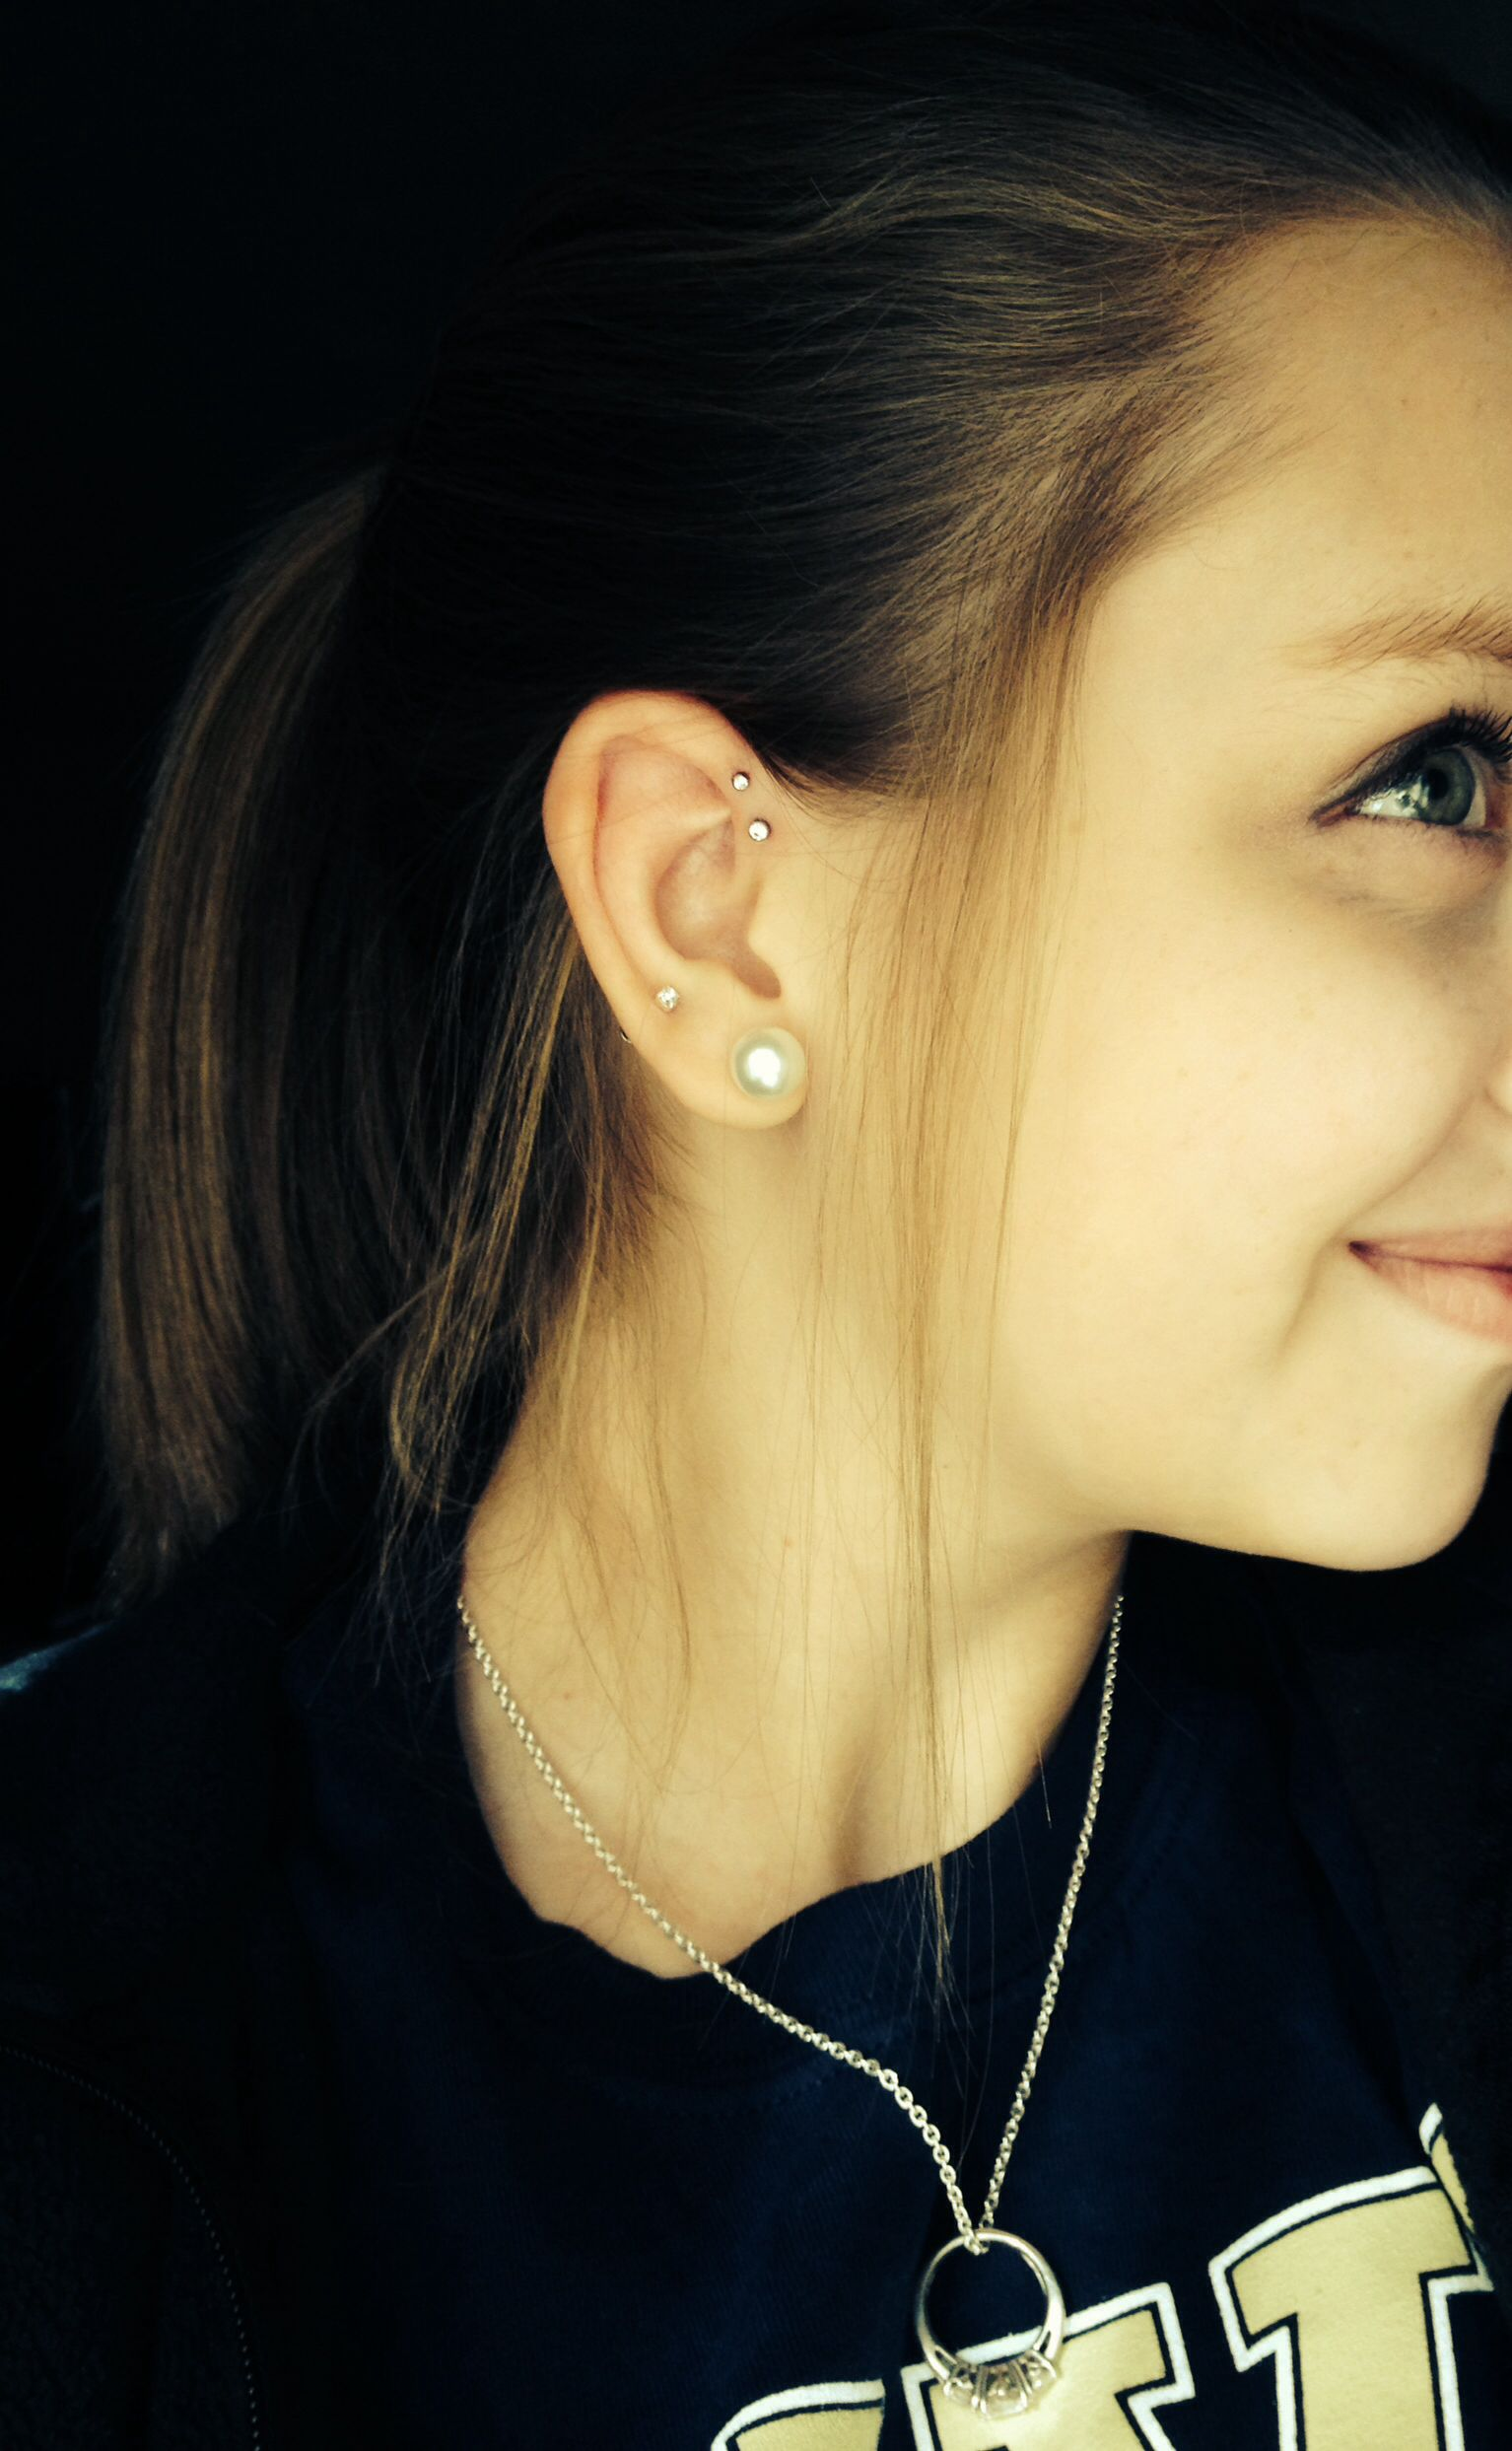 Nose piercing for guys  Double helix piercing This is definitely what I want now  Piercings